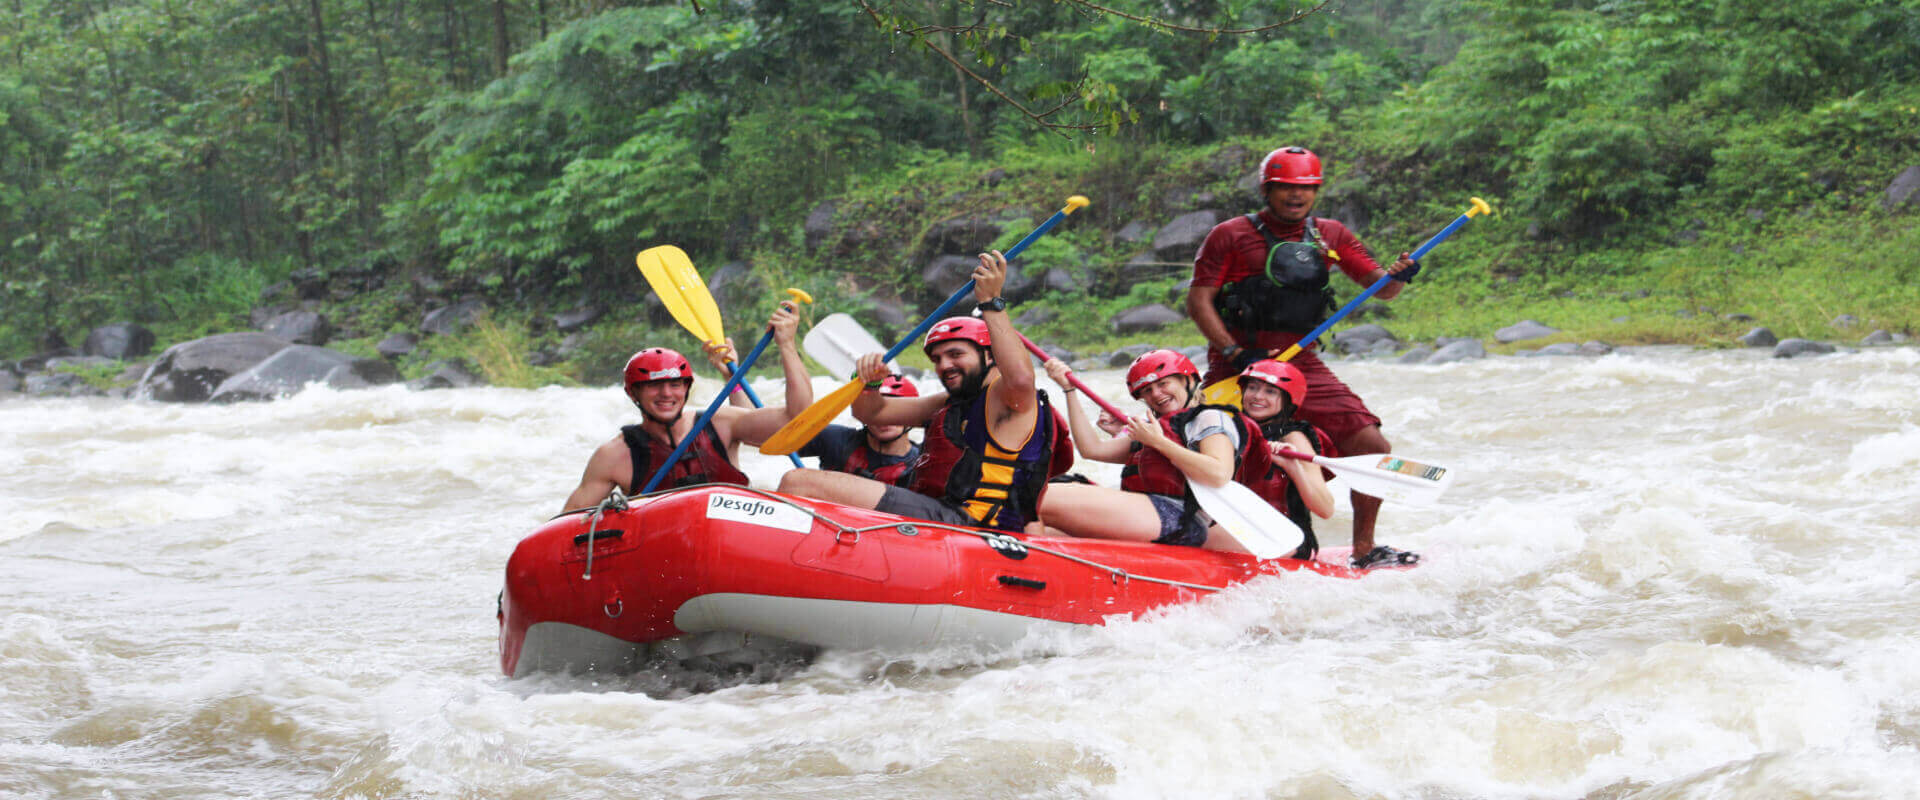 Tenorio River Rafting Class III/IV Tour | Costa Rica Jade Tours